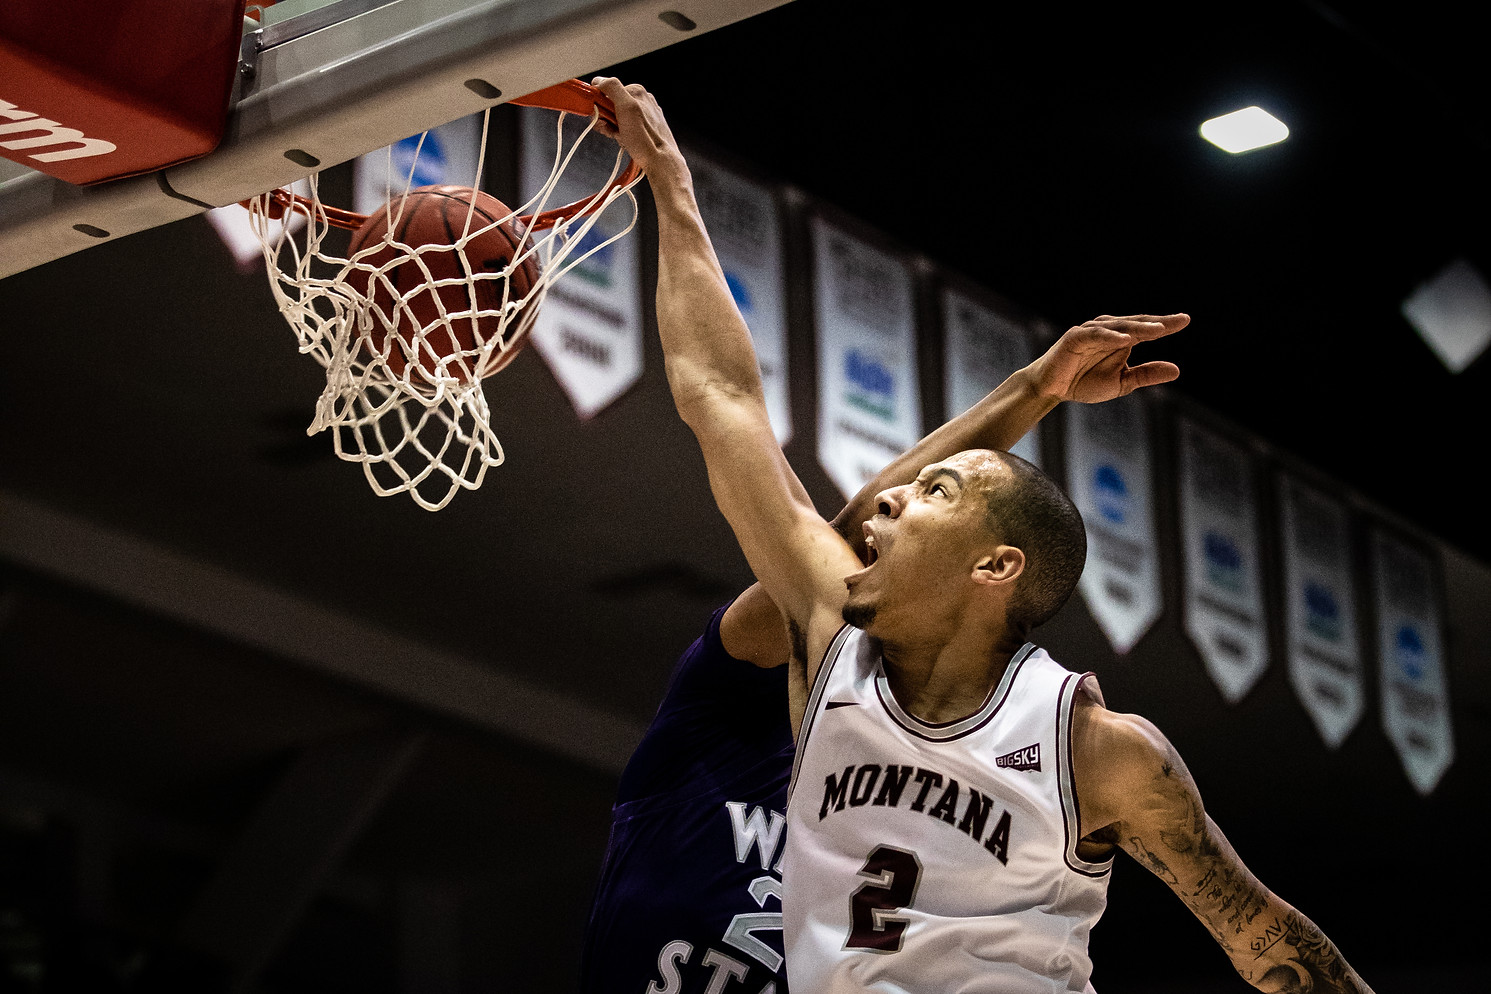 Montana senior guard Kendal Manuel dunks on a Weber State opponent after a fastbreak in the first half of the Griz 72-37 victory over Weber State on Feb. 18, 2020. The dunk marked Manuel's 1000th career point for the Griz.